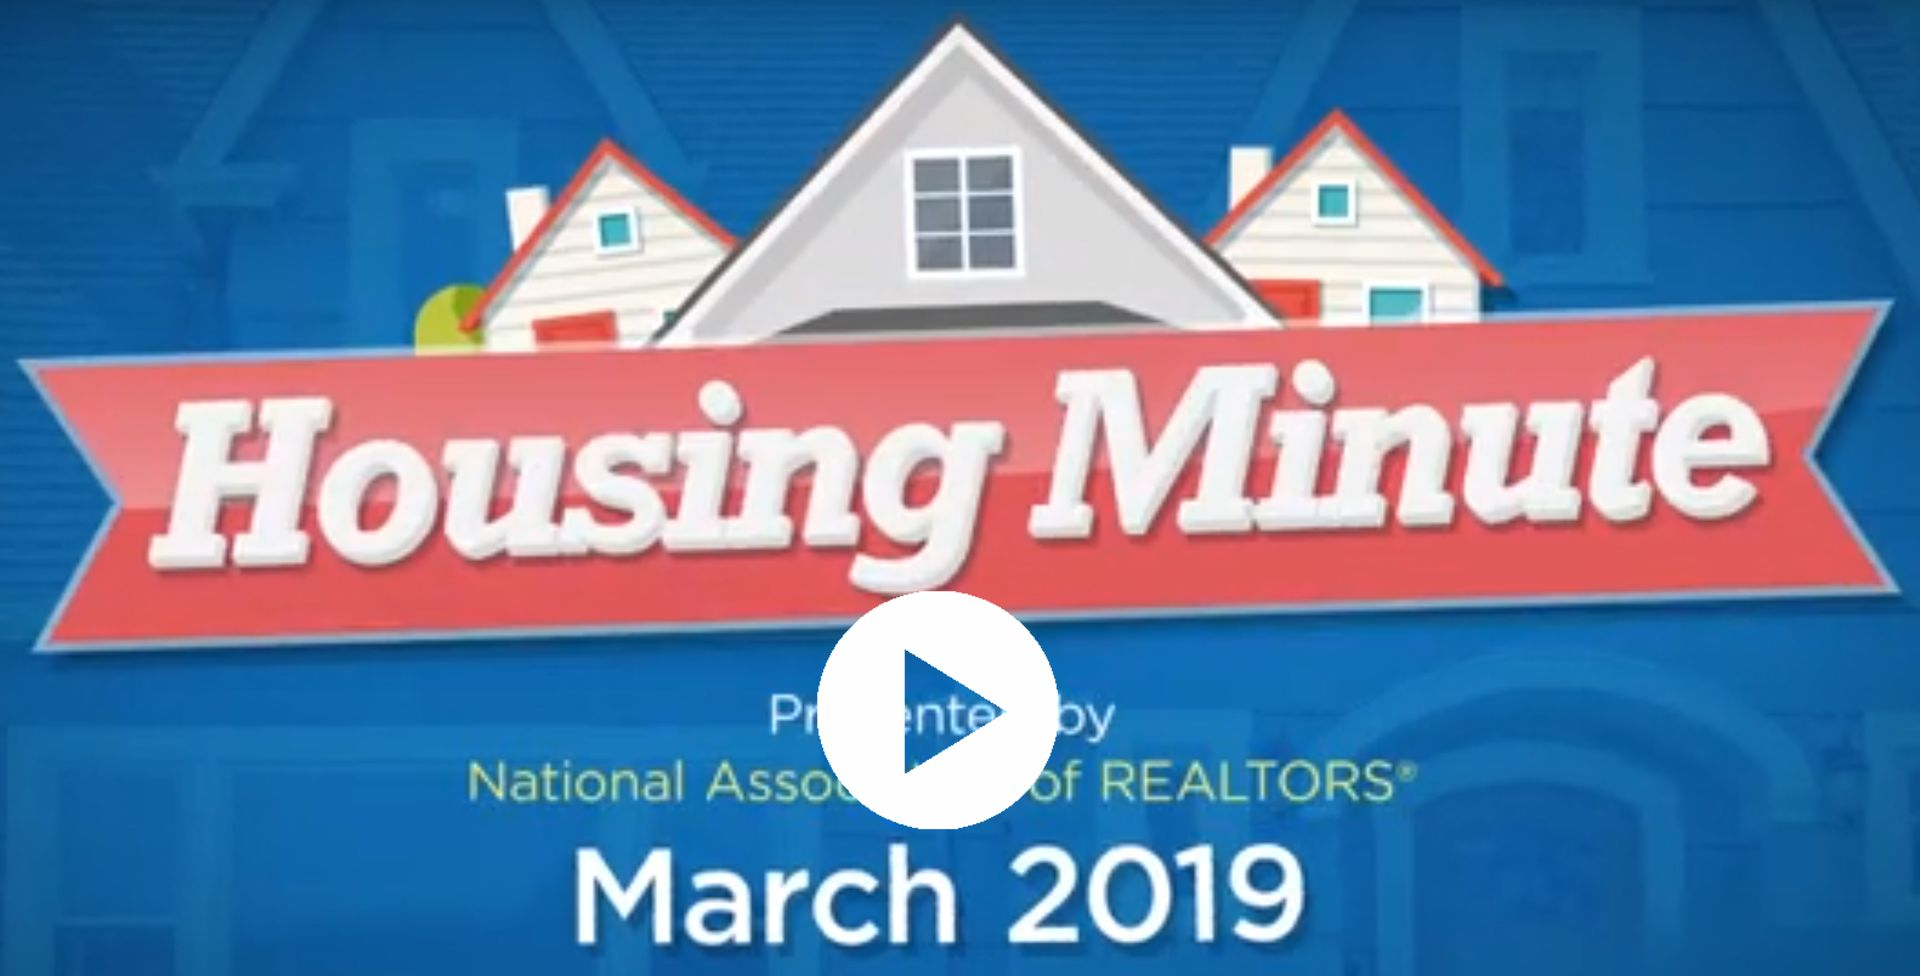 THE REALTORS' HOUSING MINUTE FOR MARCH